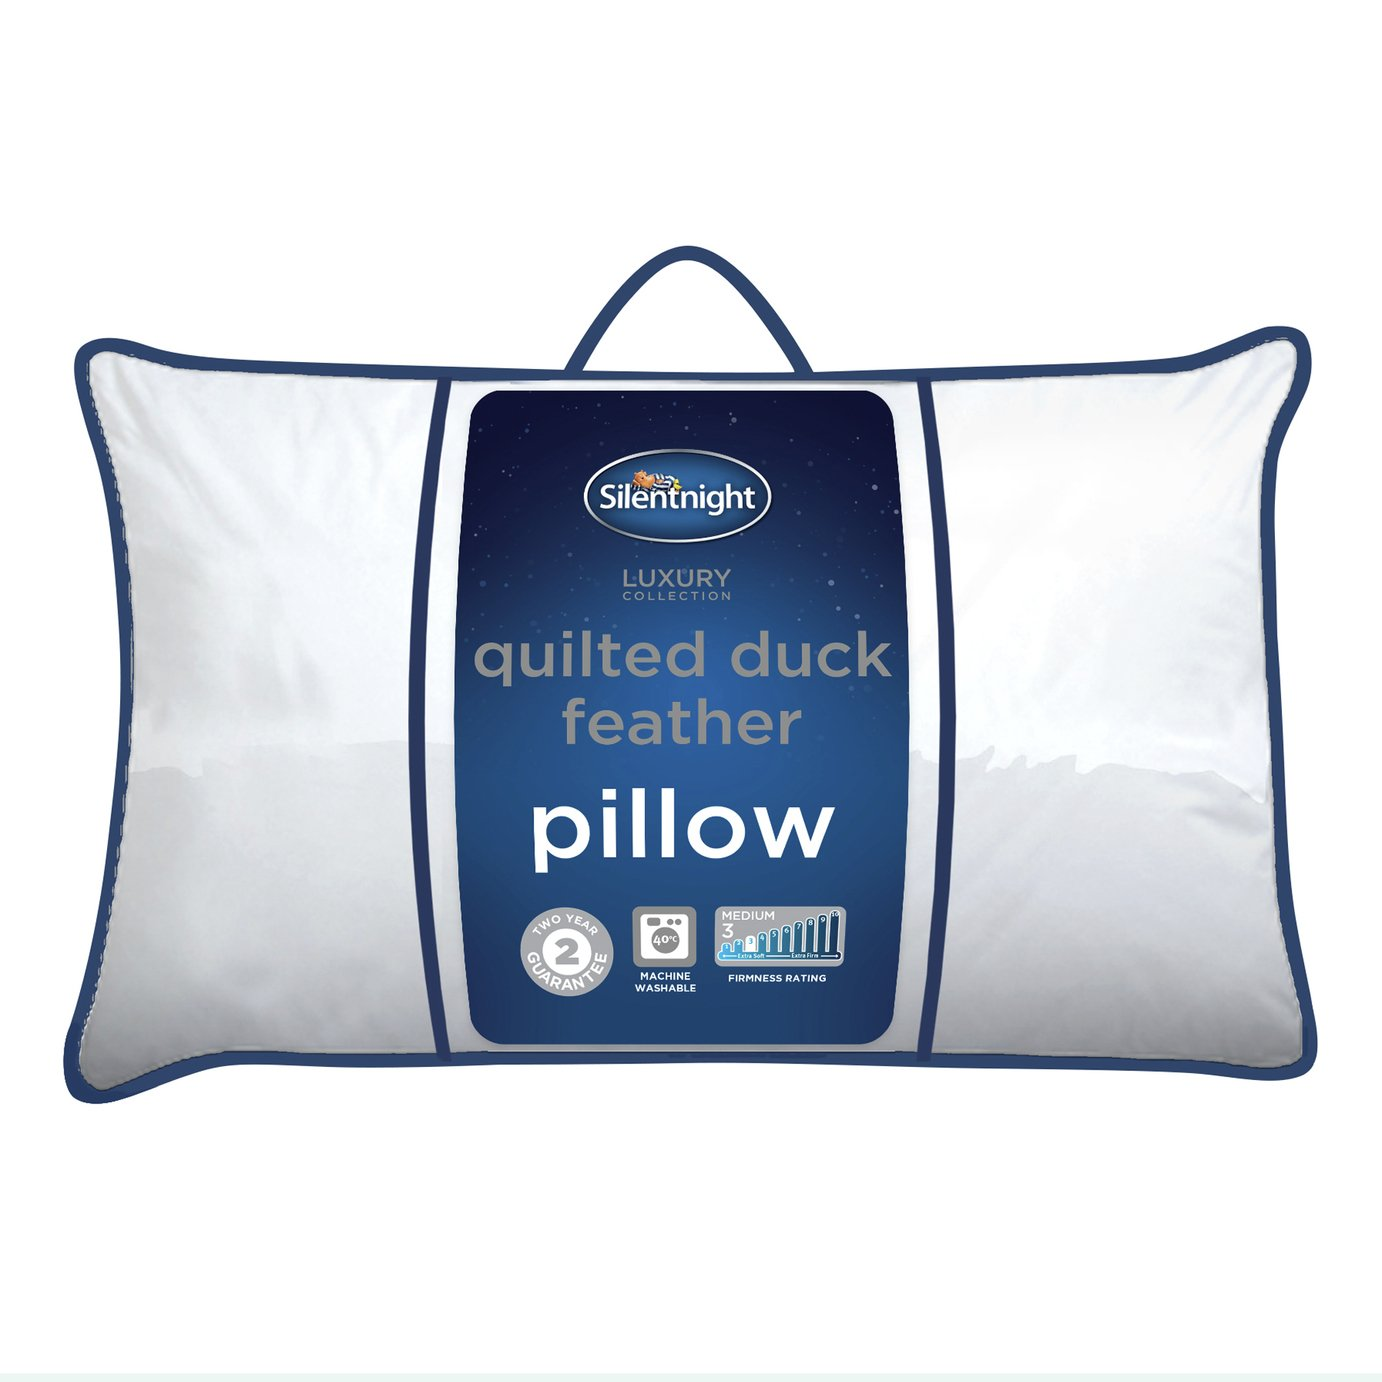 Silentnight Quilted Duck Feather Pillow